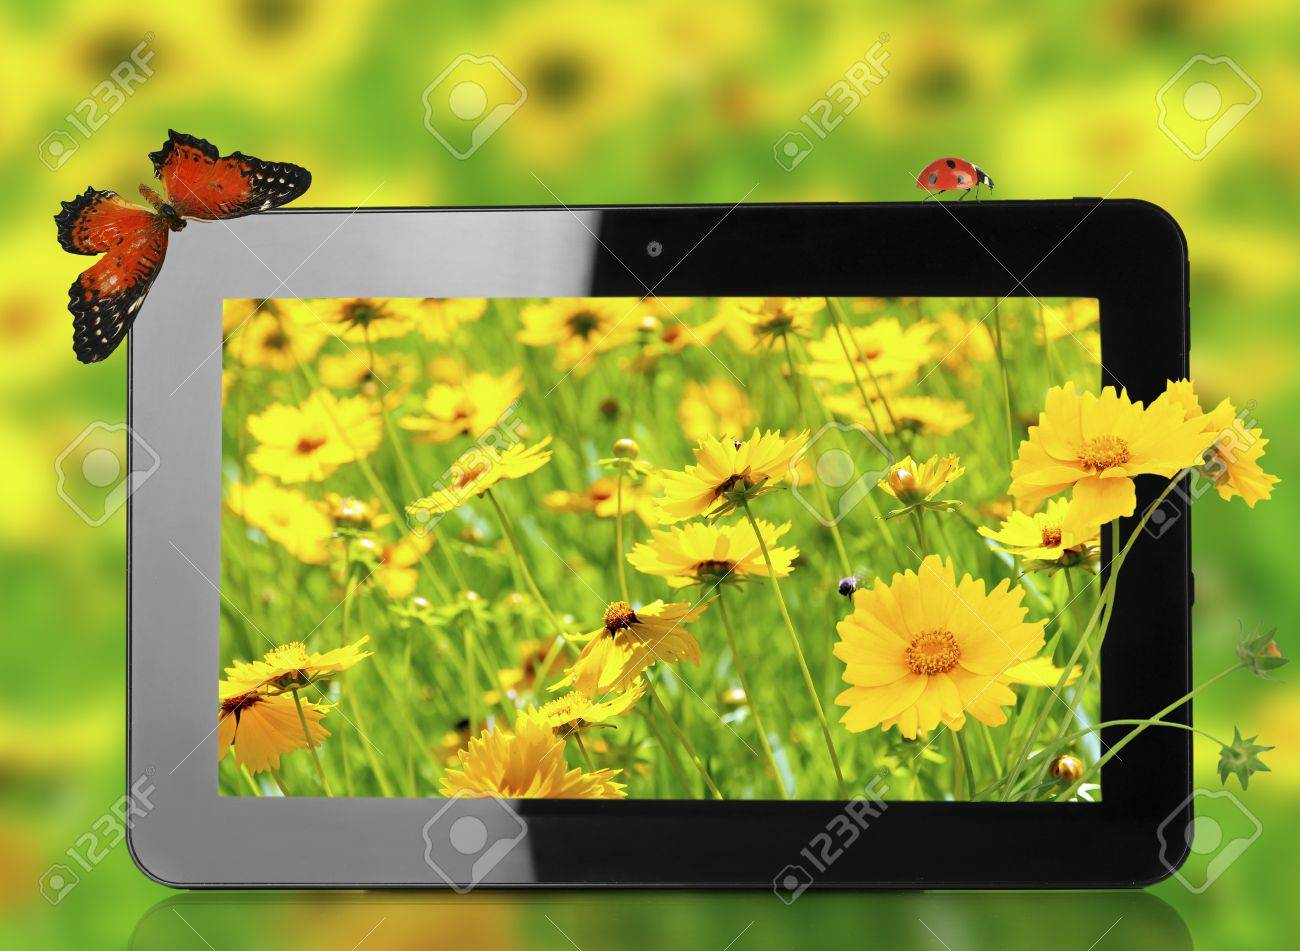 Tablet With Nature Wallpaper On Screens On Natural Background Stock